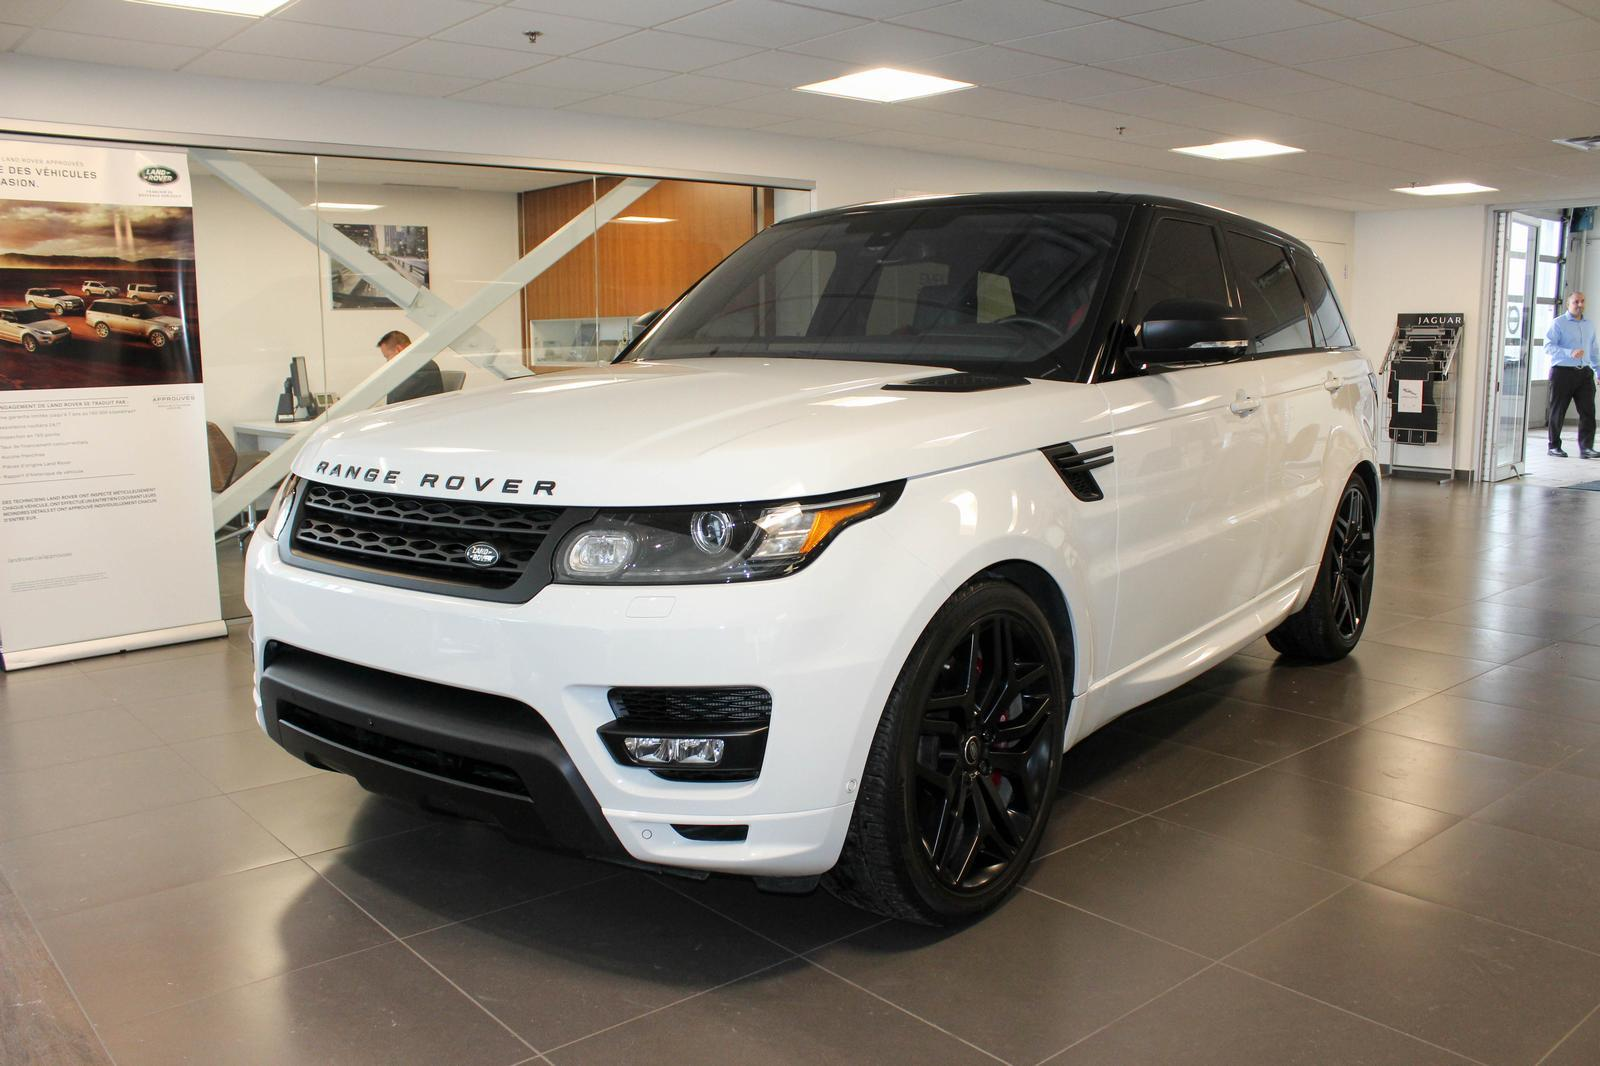 land rover range rover sport for sale in dallas tx 75250 sexy girl and car photos. Black Bedroom Furniture Sets. Home Design Ideas